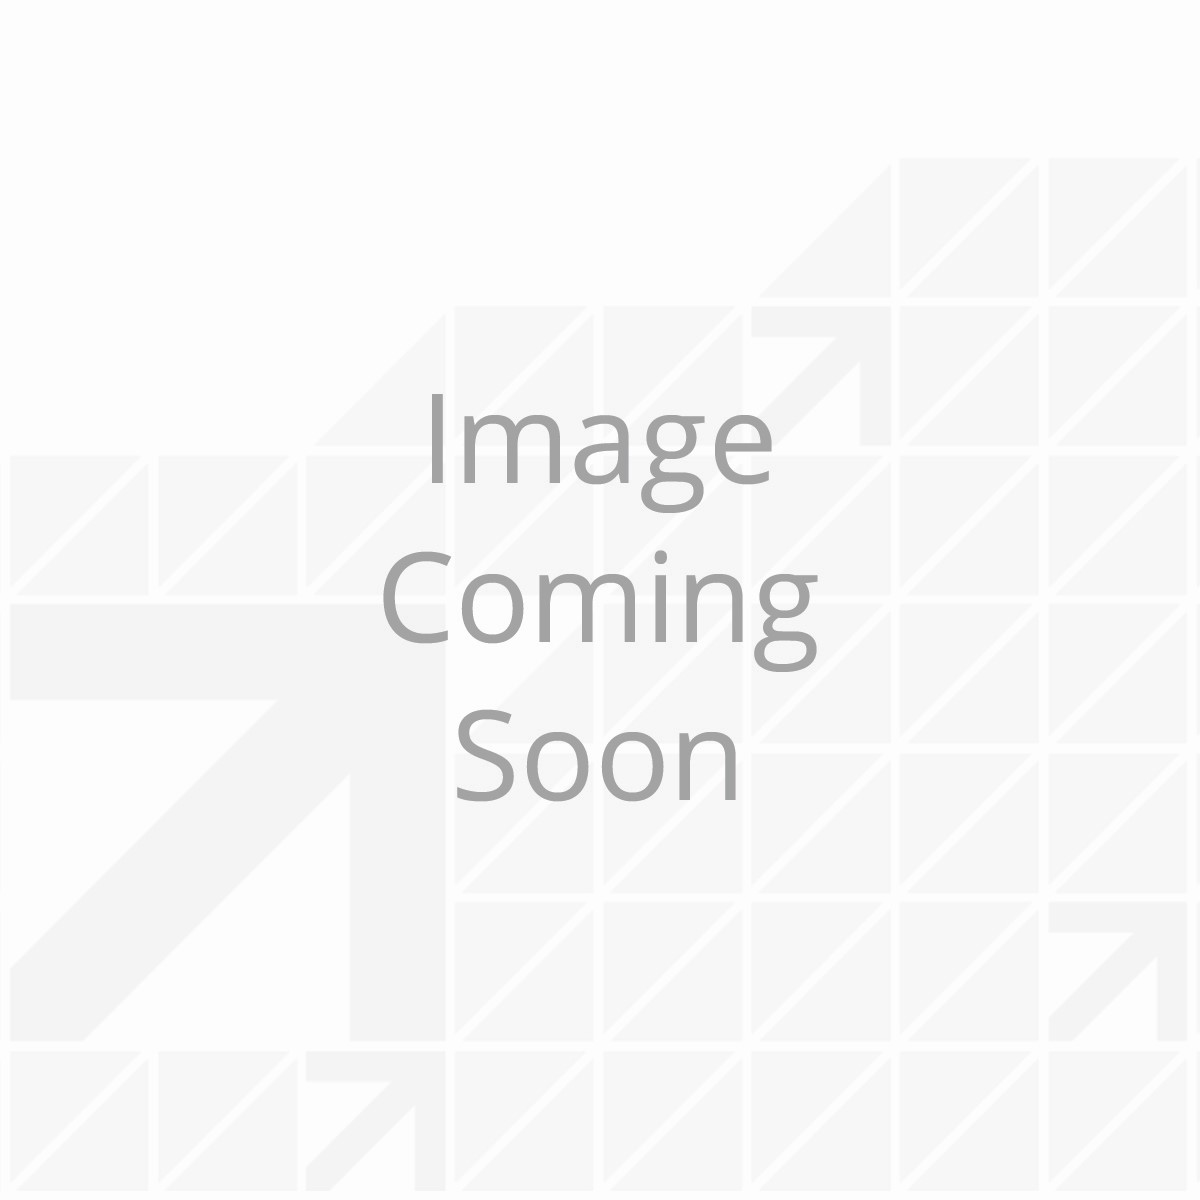 4G LTE Access Point and WiFi Booster with Ceiling Mount Bracket